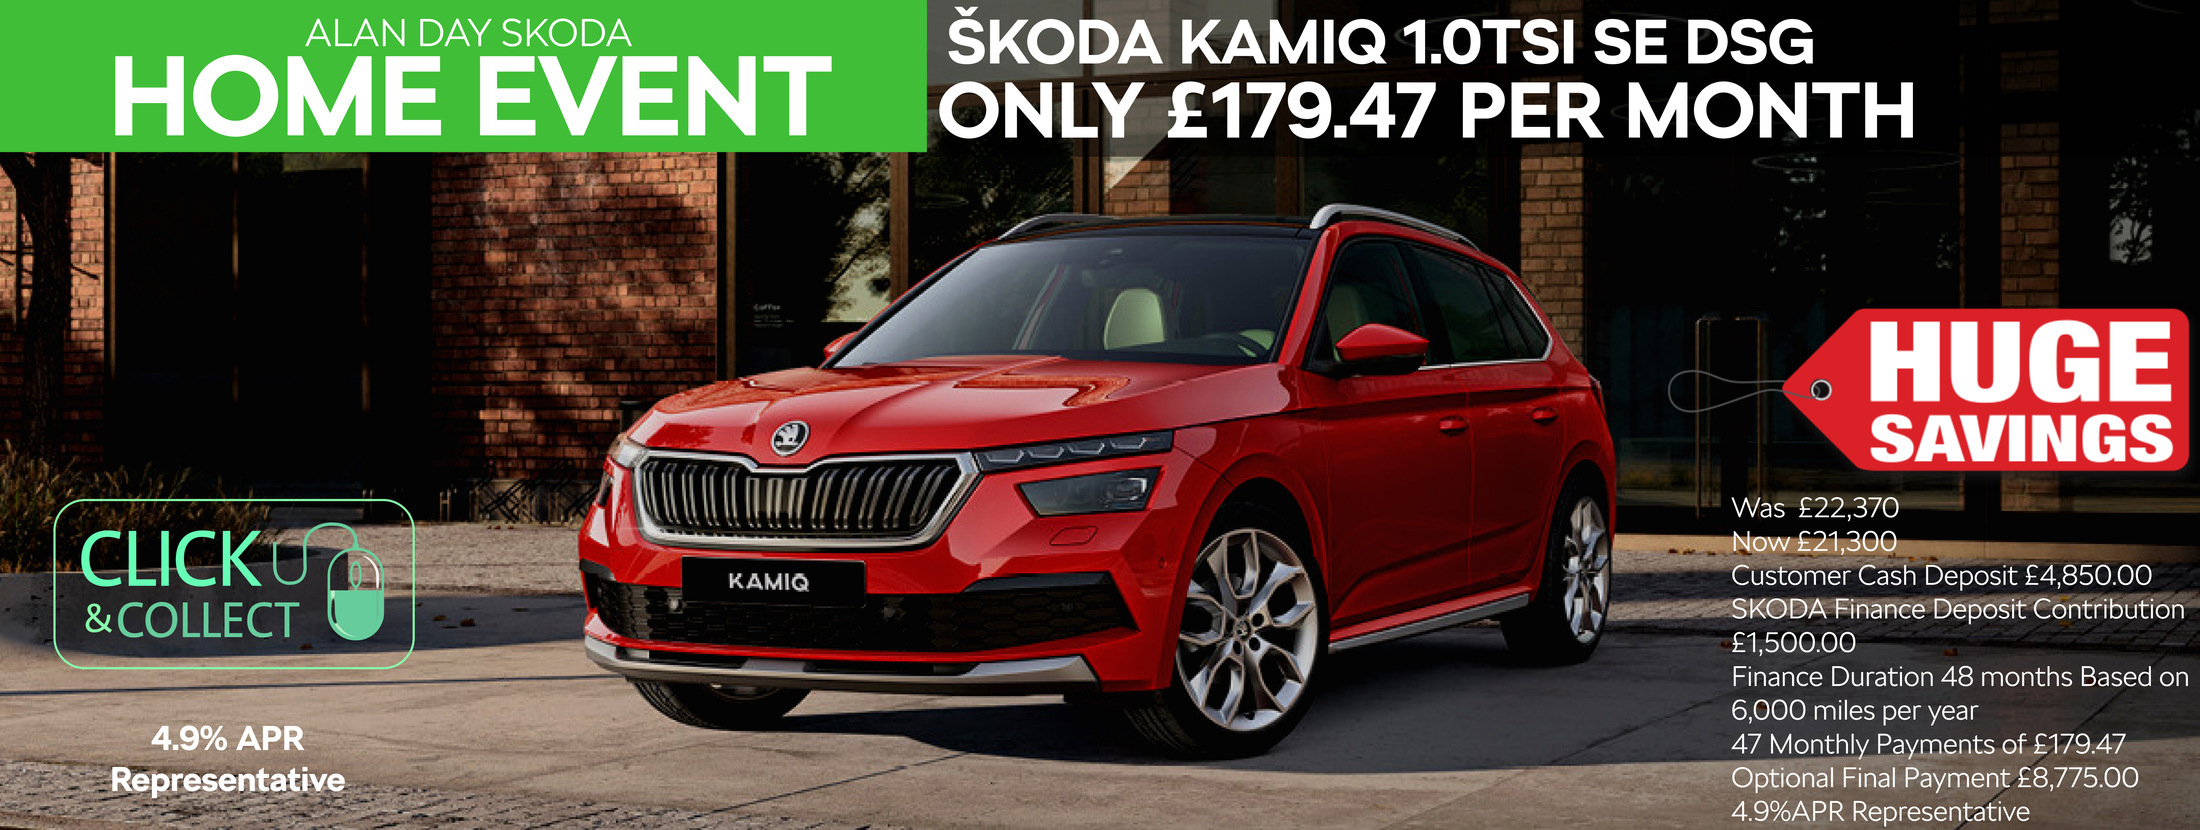 SKODA Kamiq Home Event